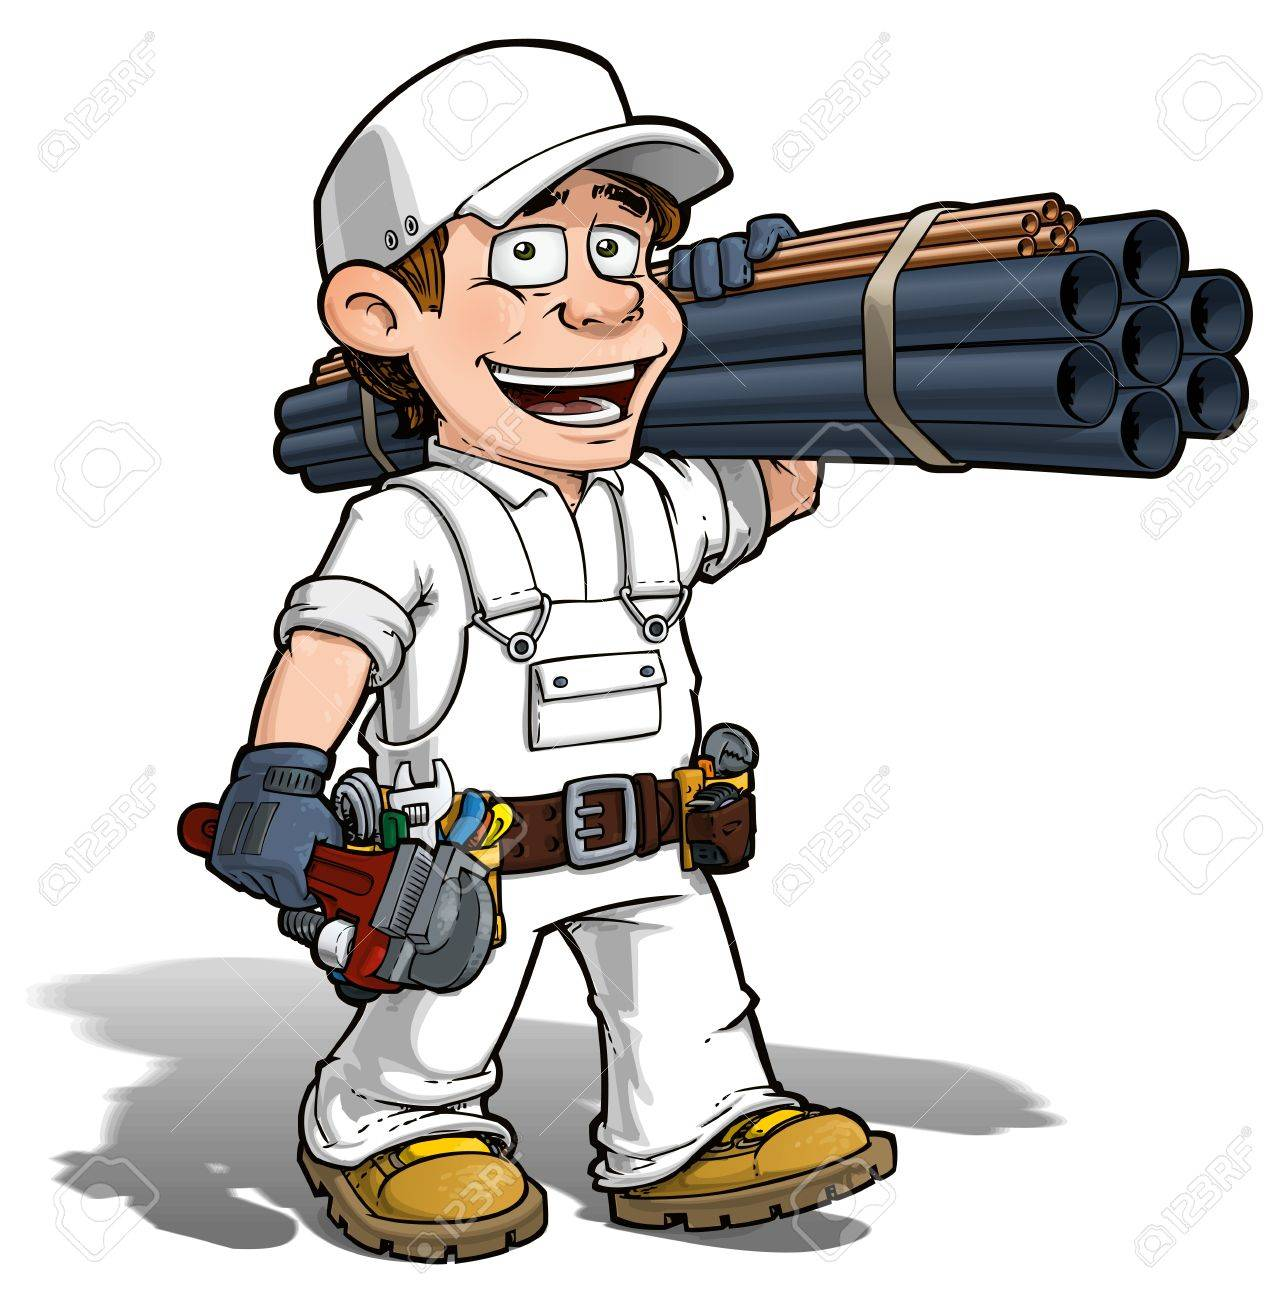 Cartoon Illustration Of A Handyman - Plumber Carrying Pipes And ...